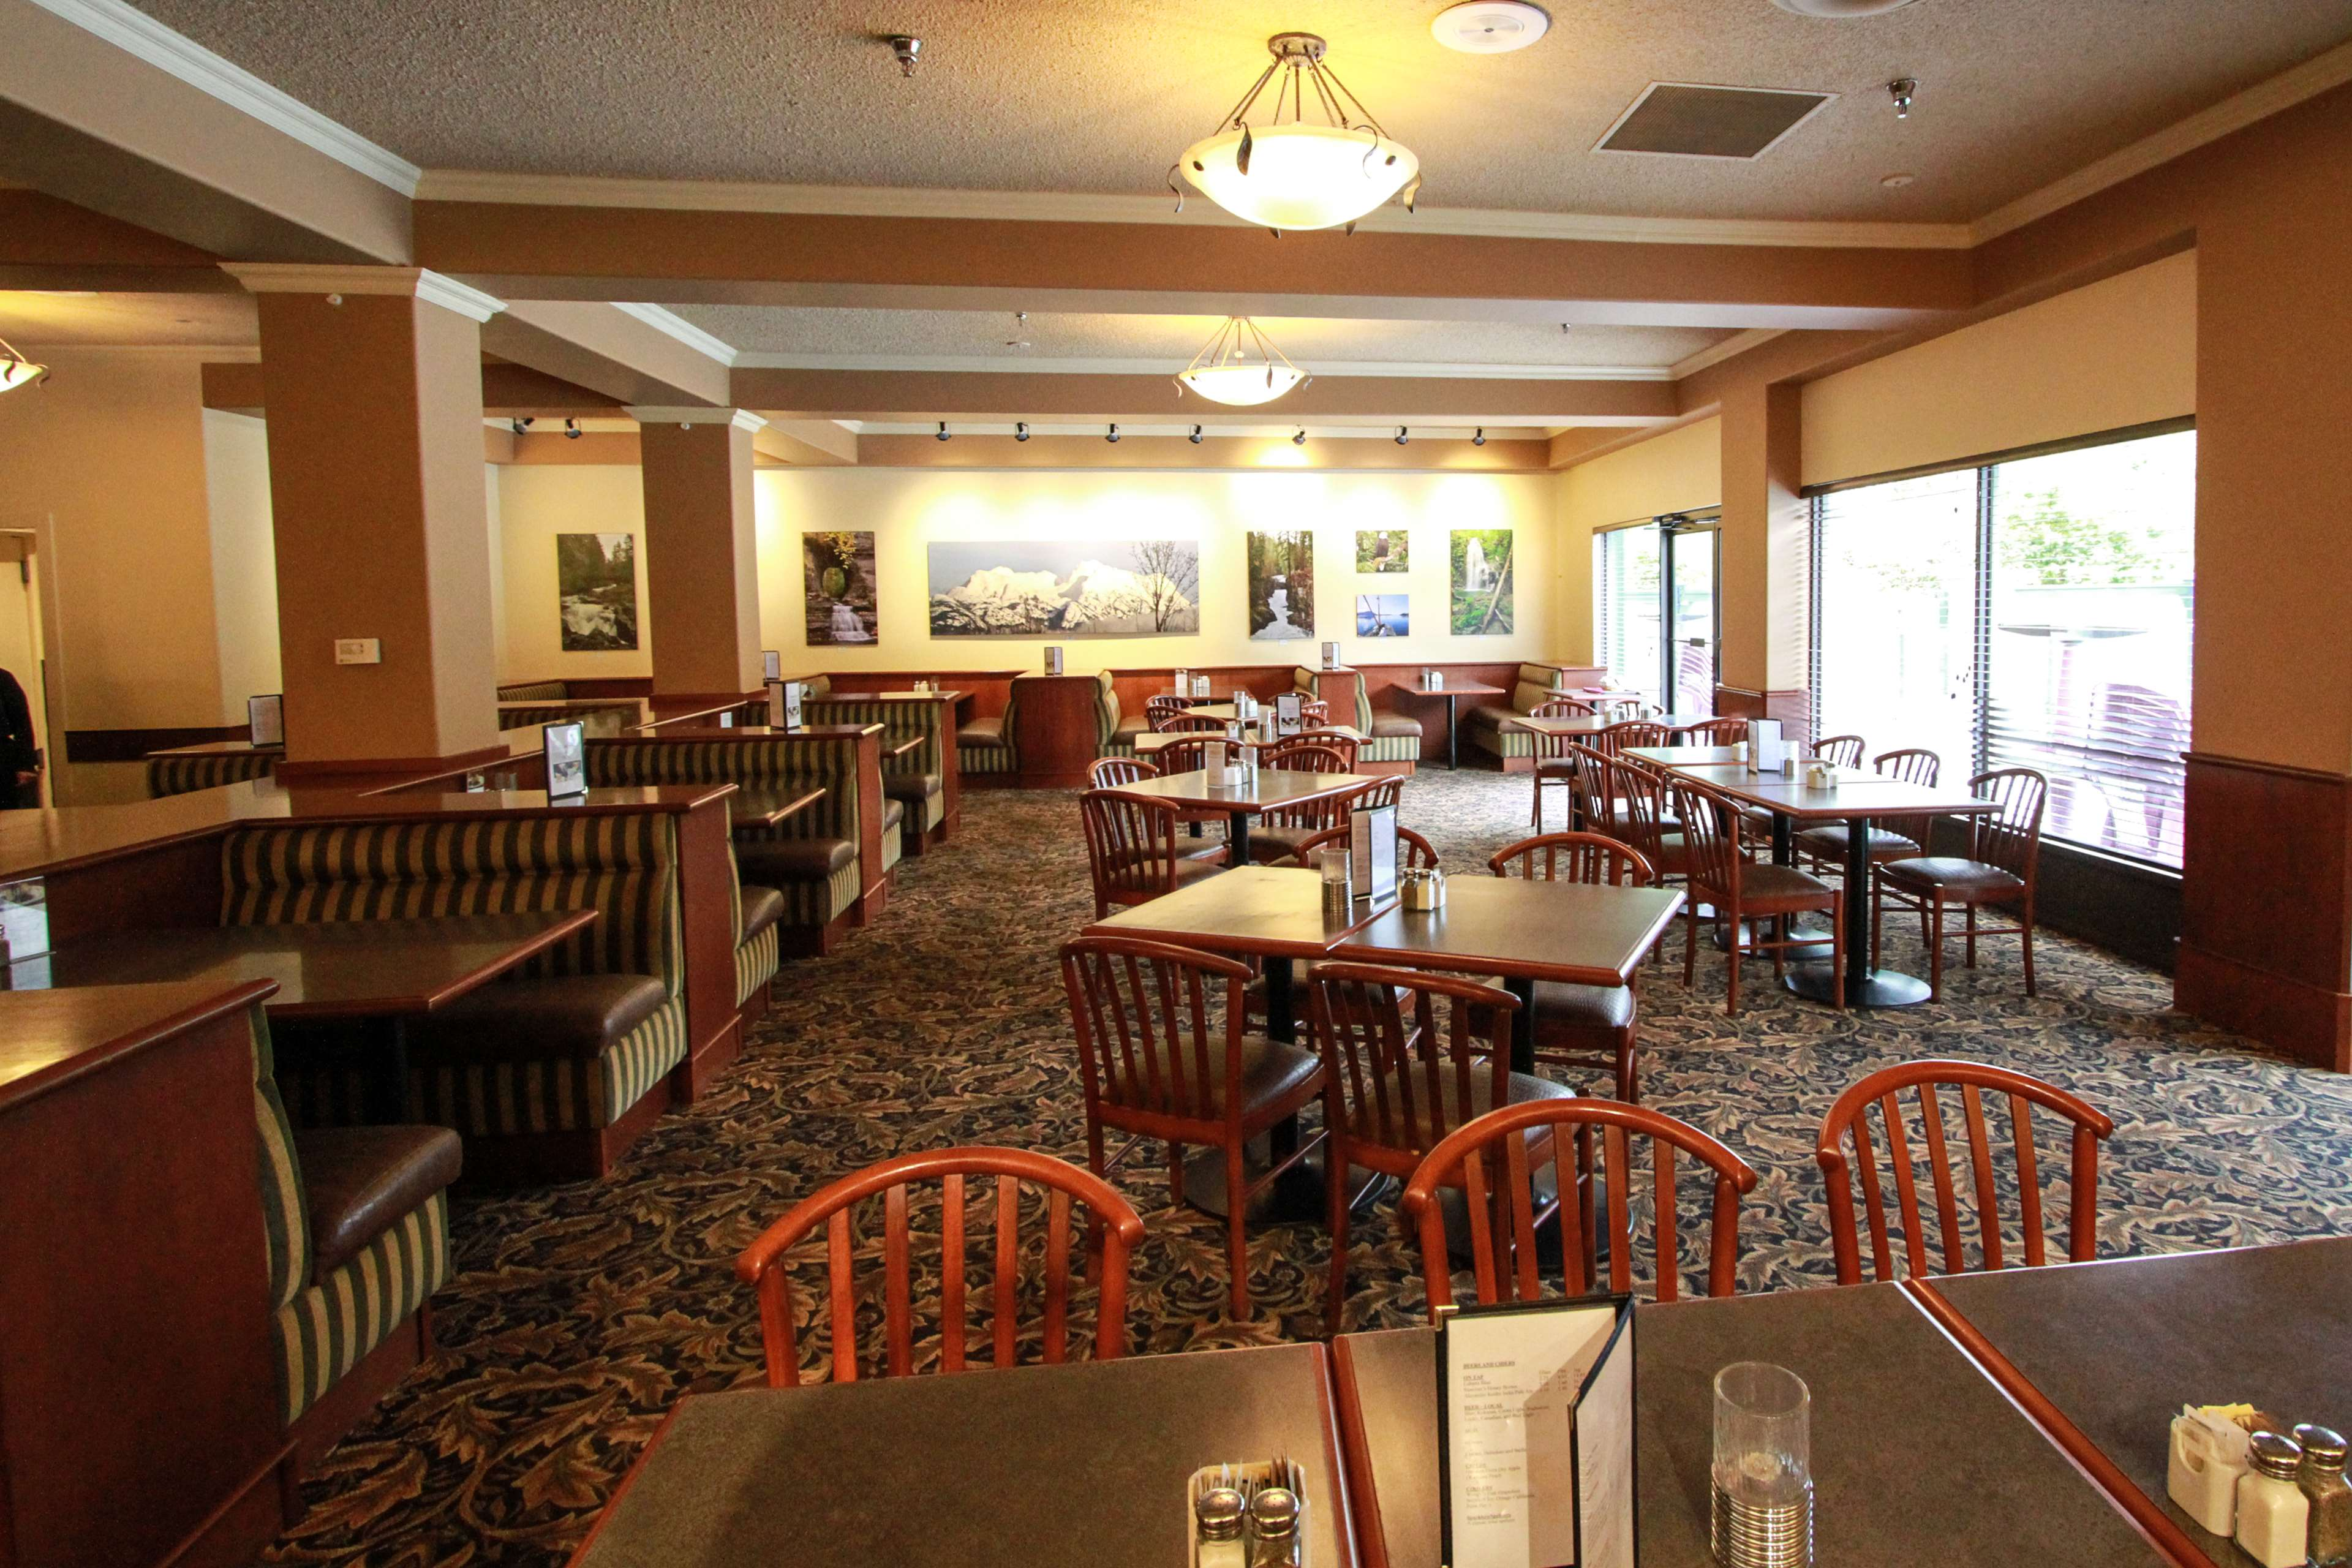 Best Western Plus Barclay Hotel in Port Alberni: Groups of up to 30 people welcome. Reservations recommended.